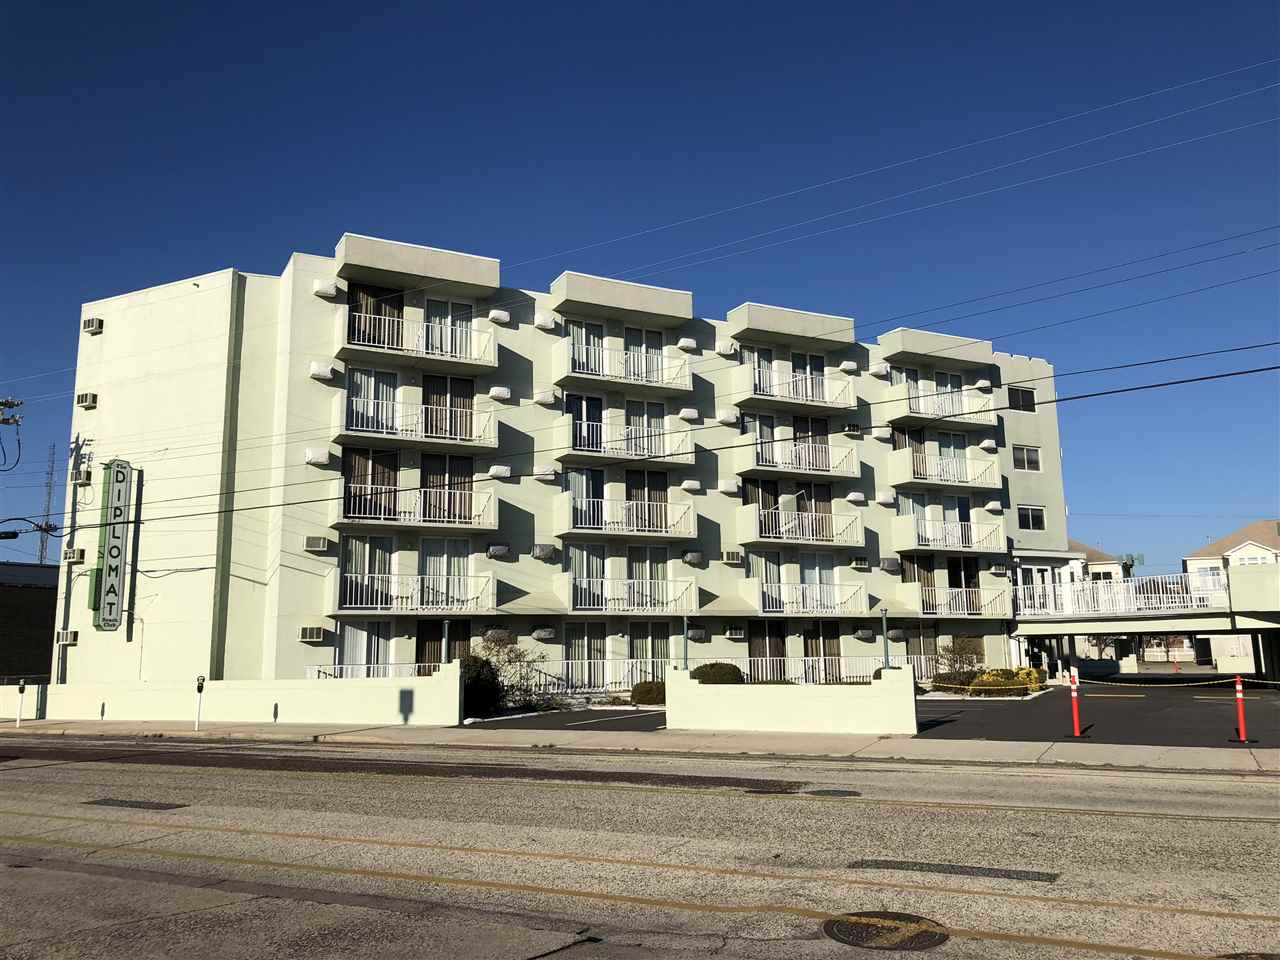 225, Unit 320 Wildwood, Wildwood